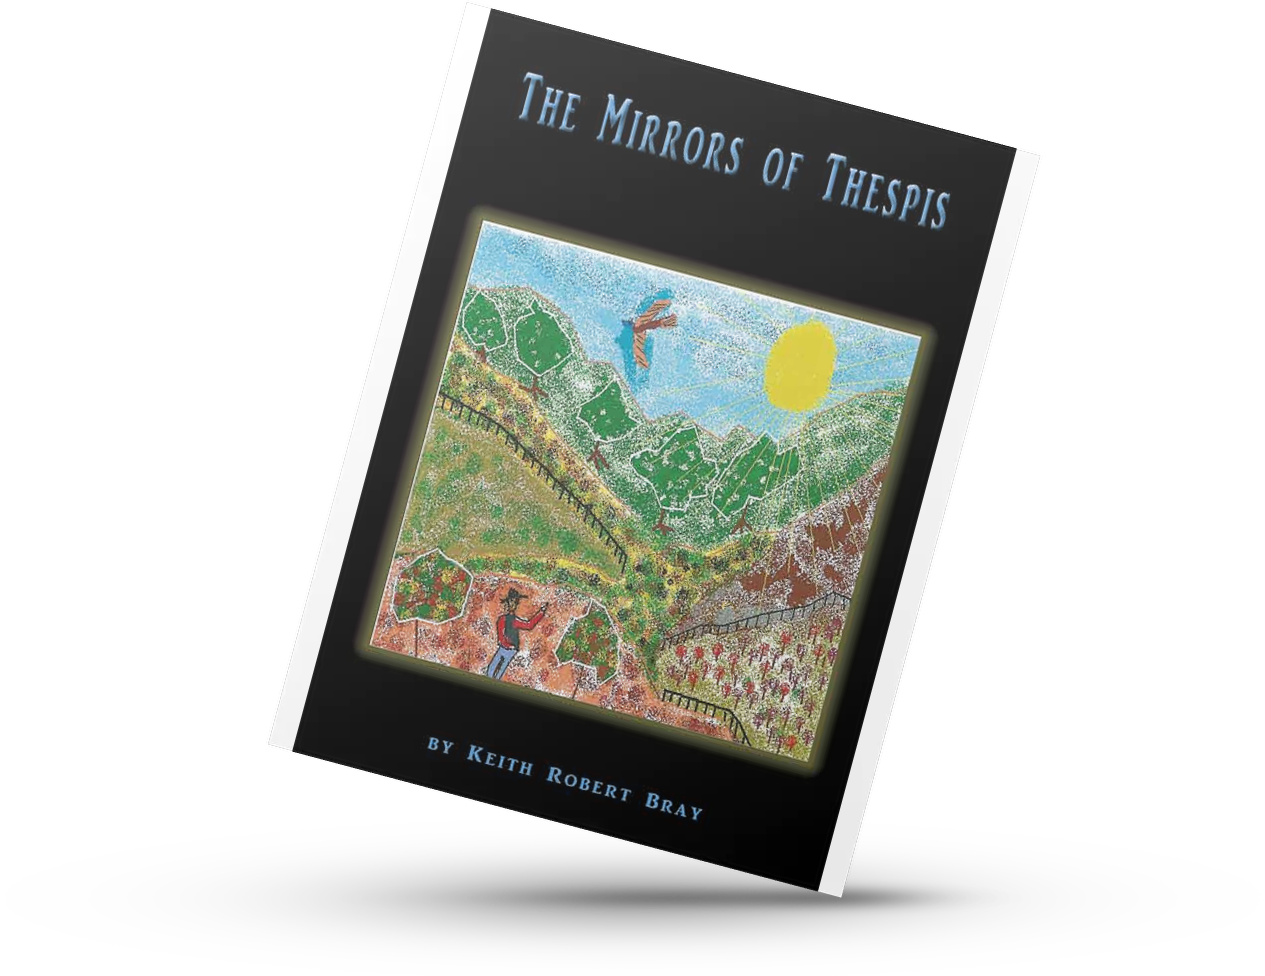 the mirrors OF Thespis. poetry book